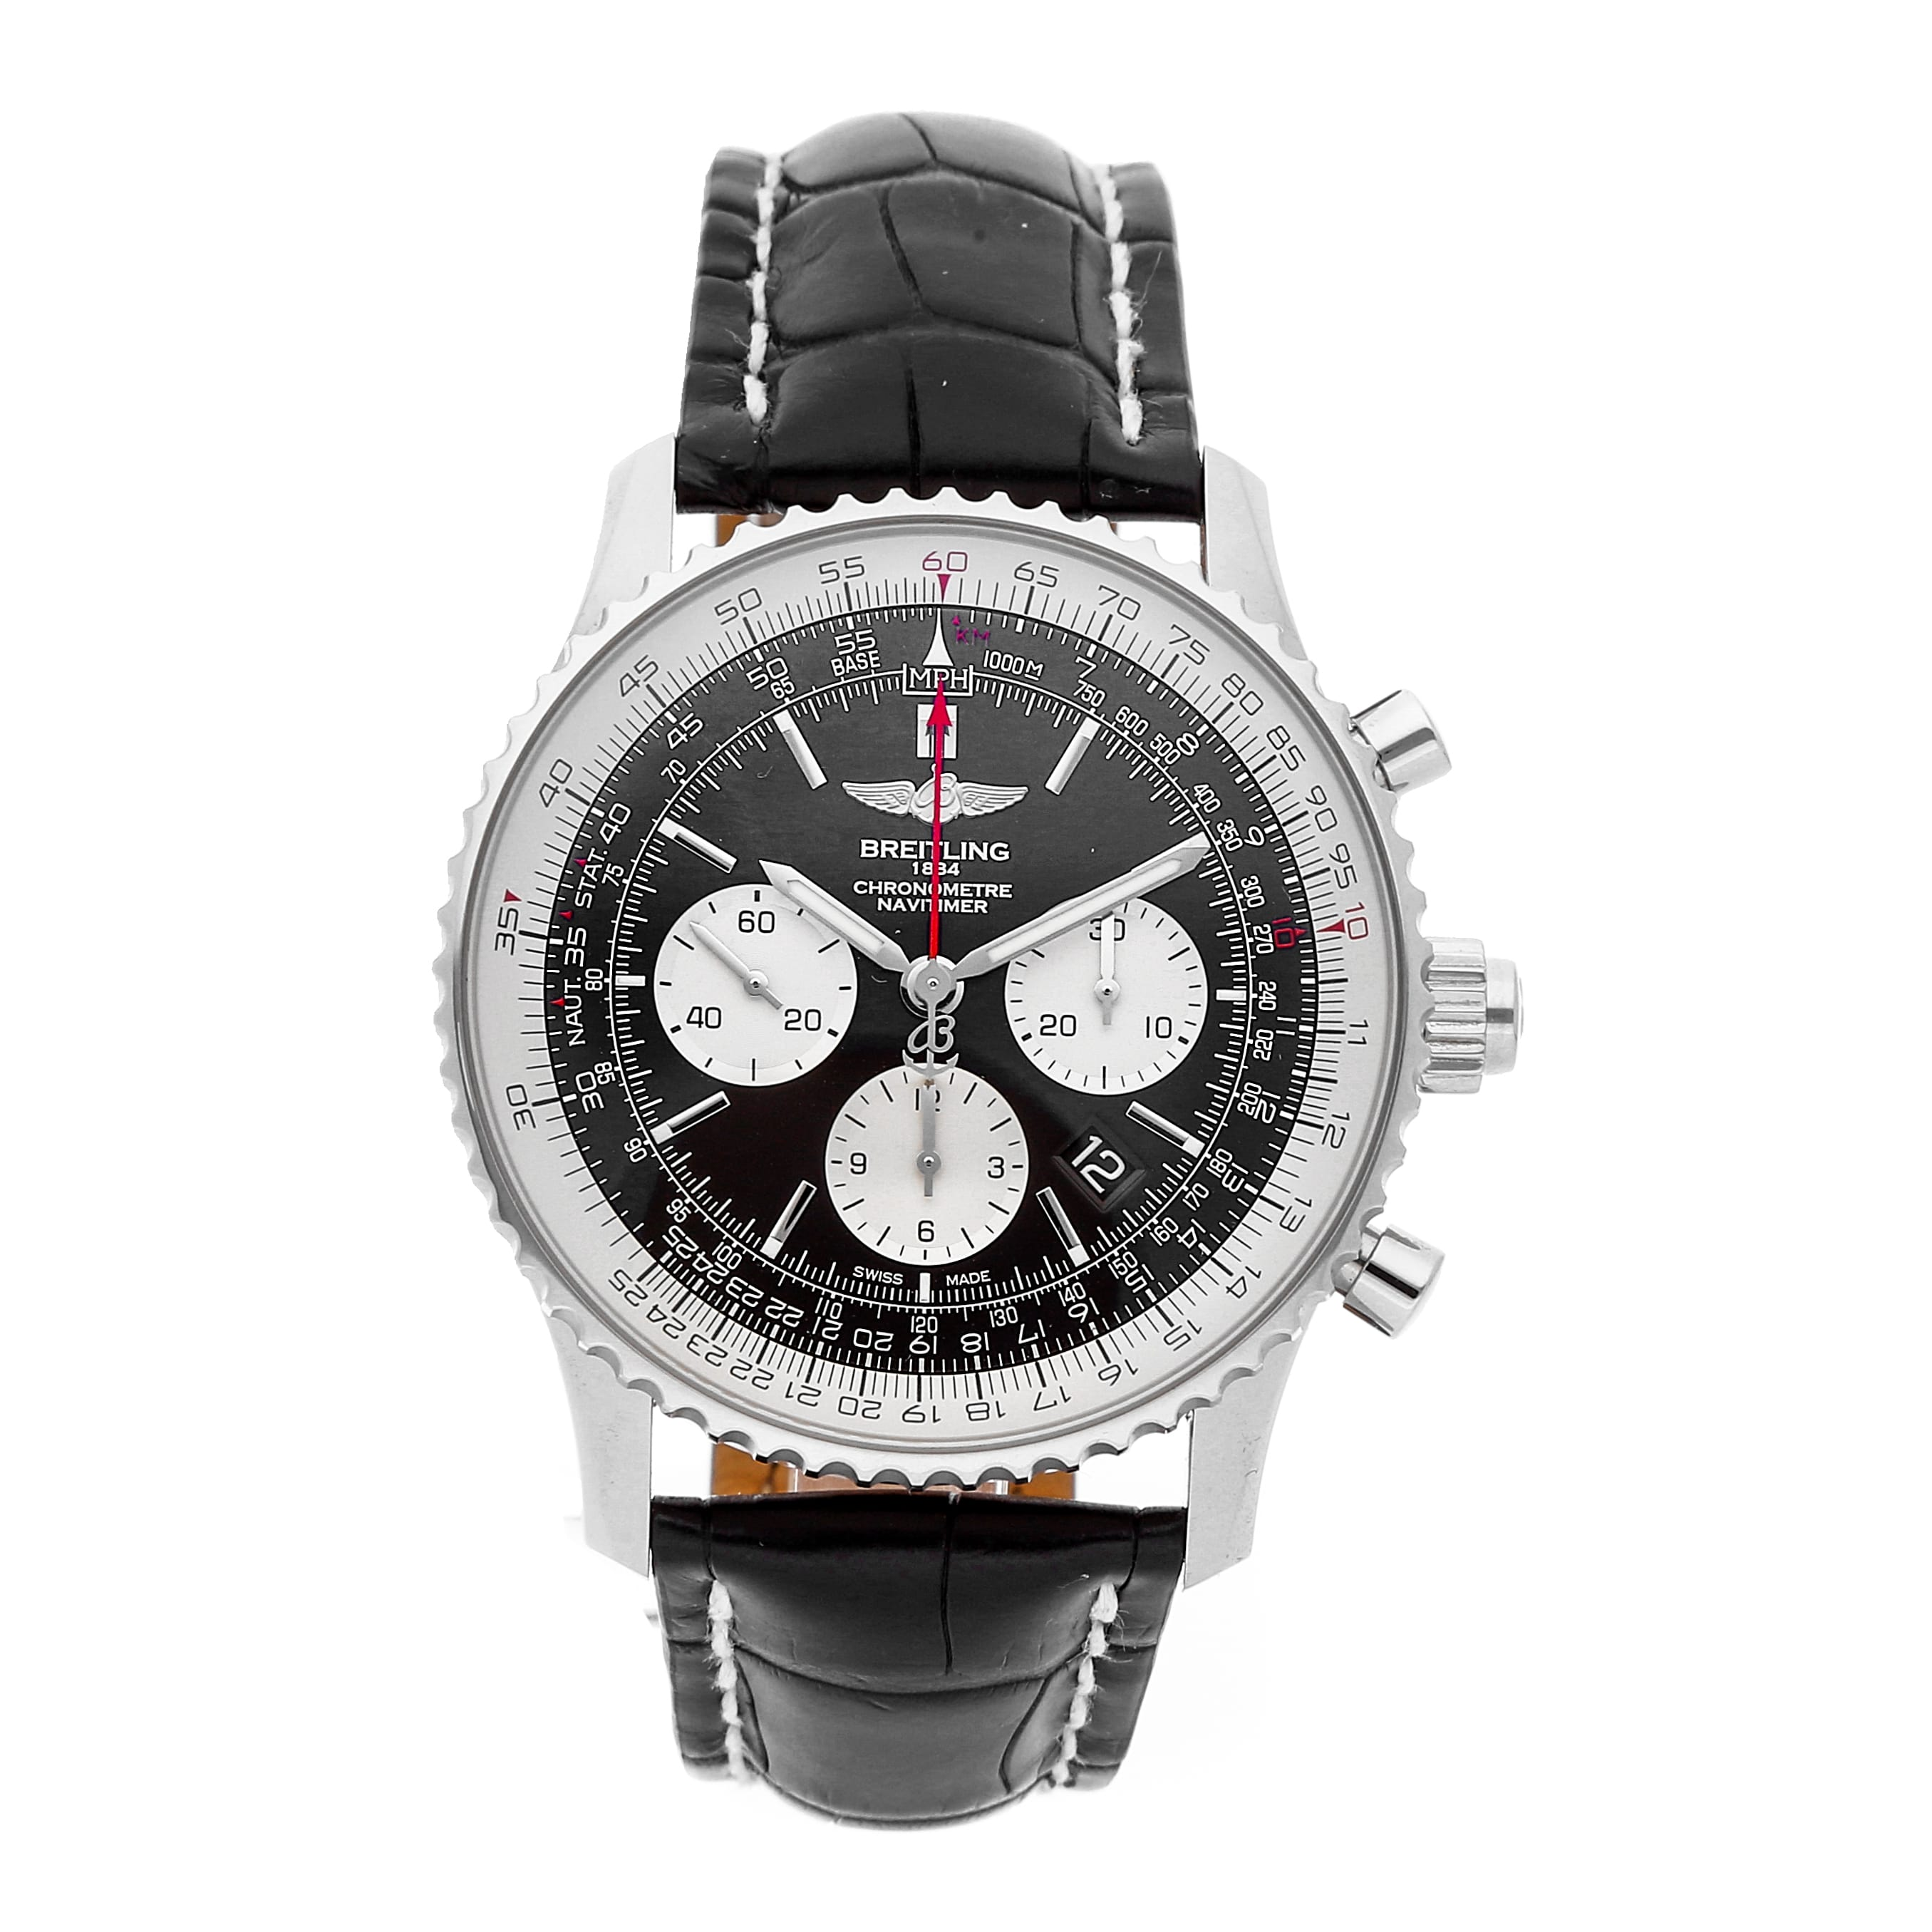 average price paid for breitling navitimer